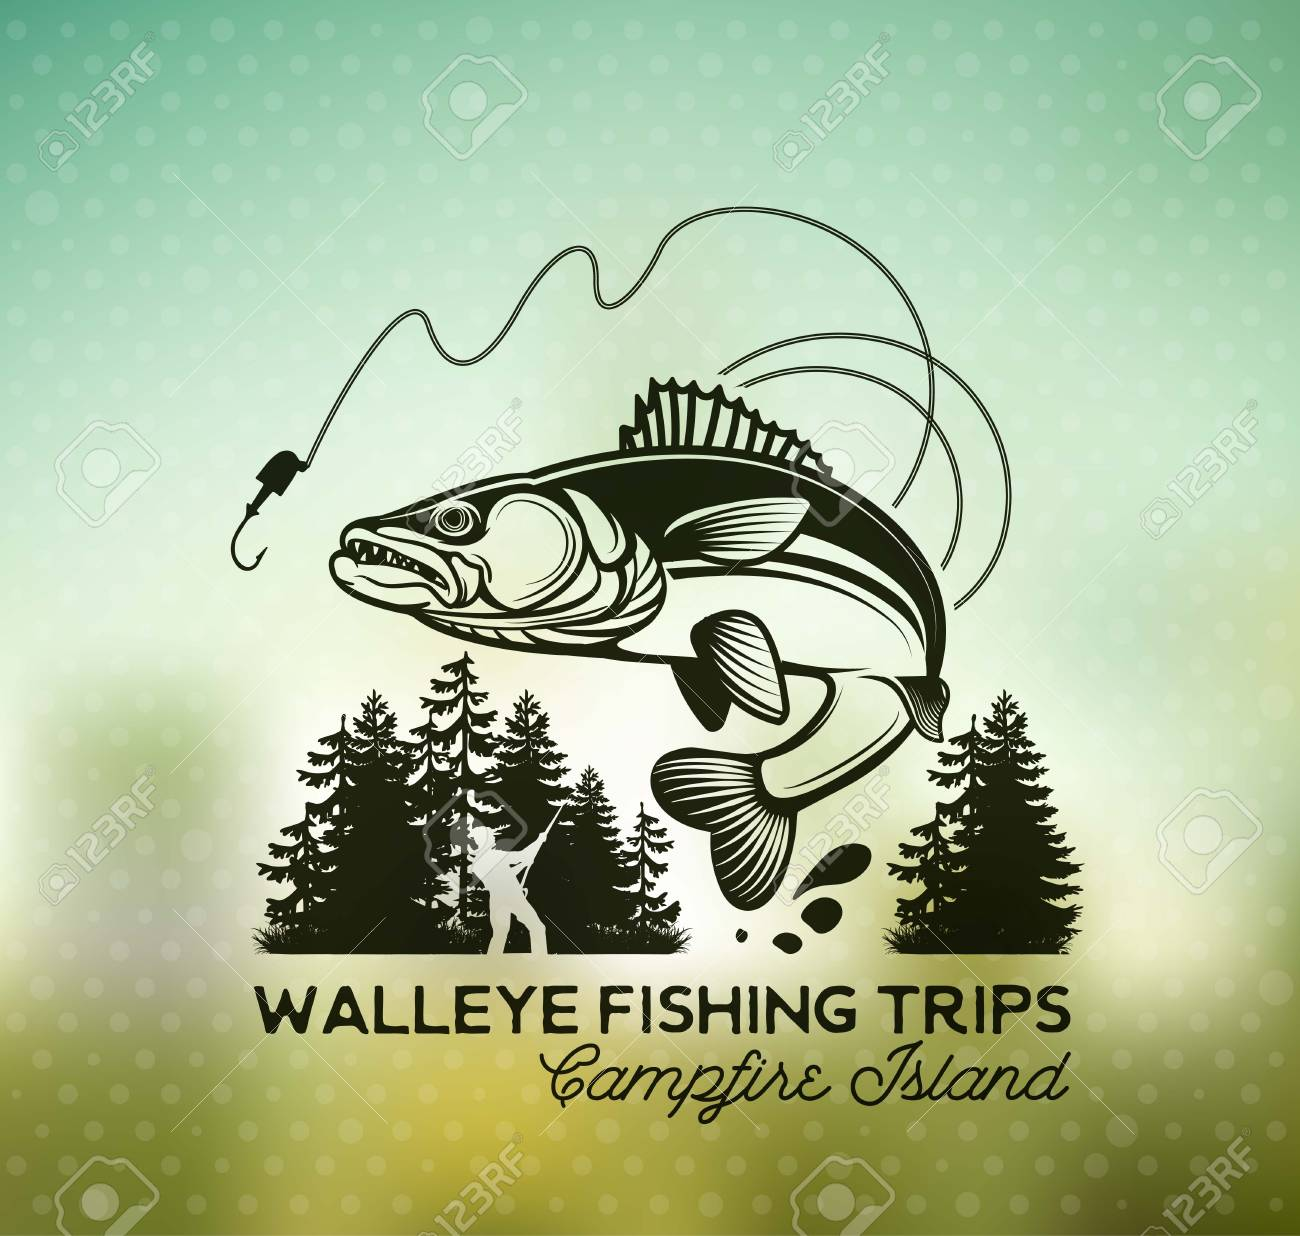 Vintage Walleye Fishing Emblems and Labels. Vector Illustration.